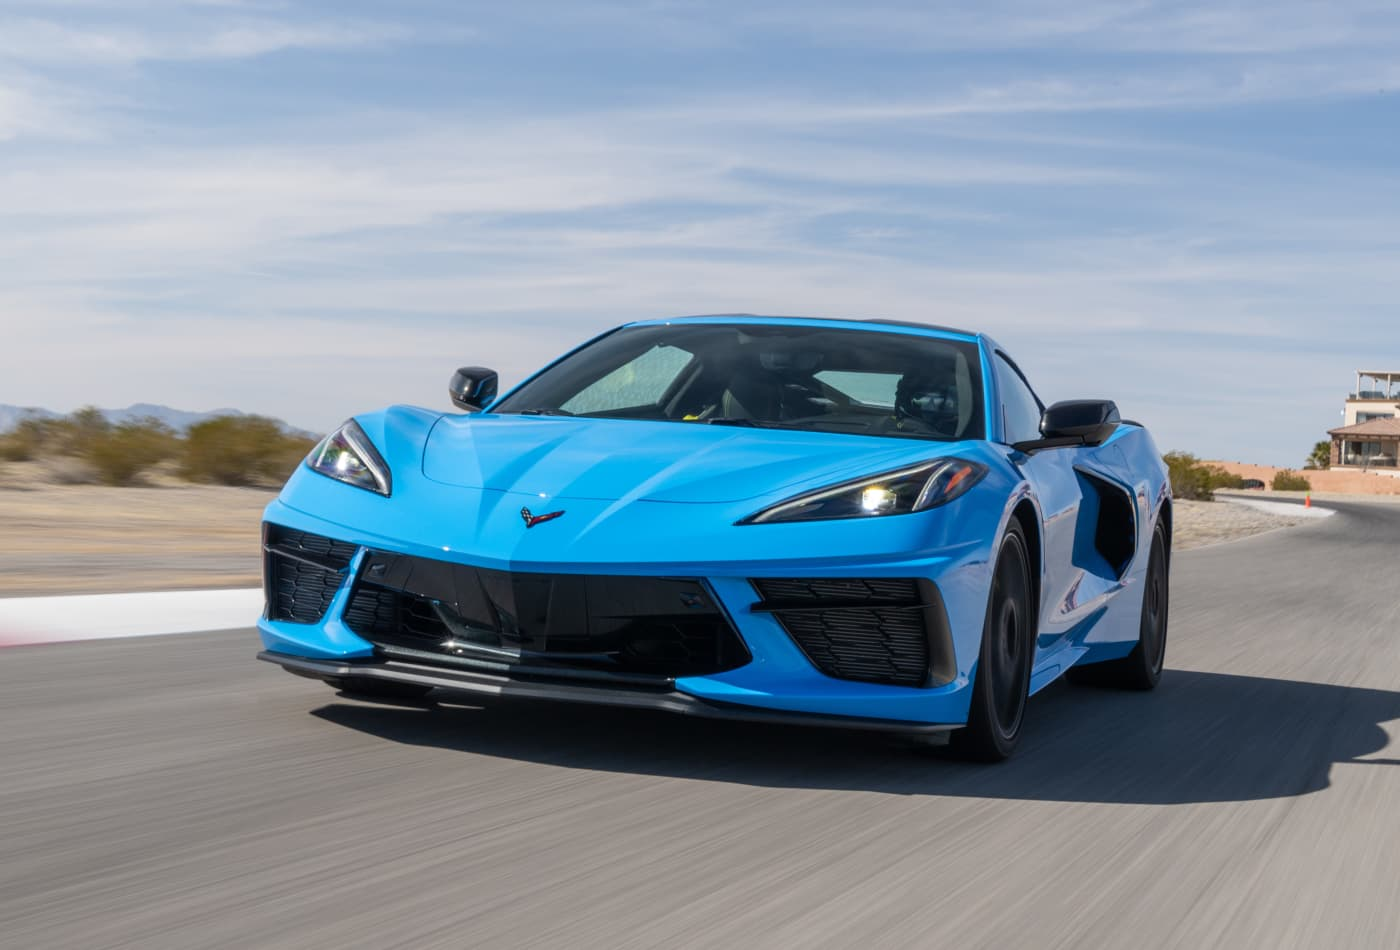 2020 Chevrolet Corvette: 5 unique features of the mid-engine supercar